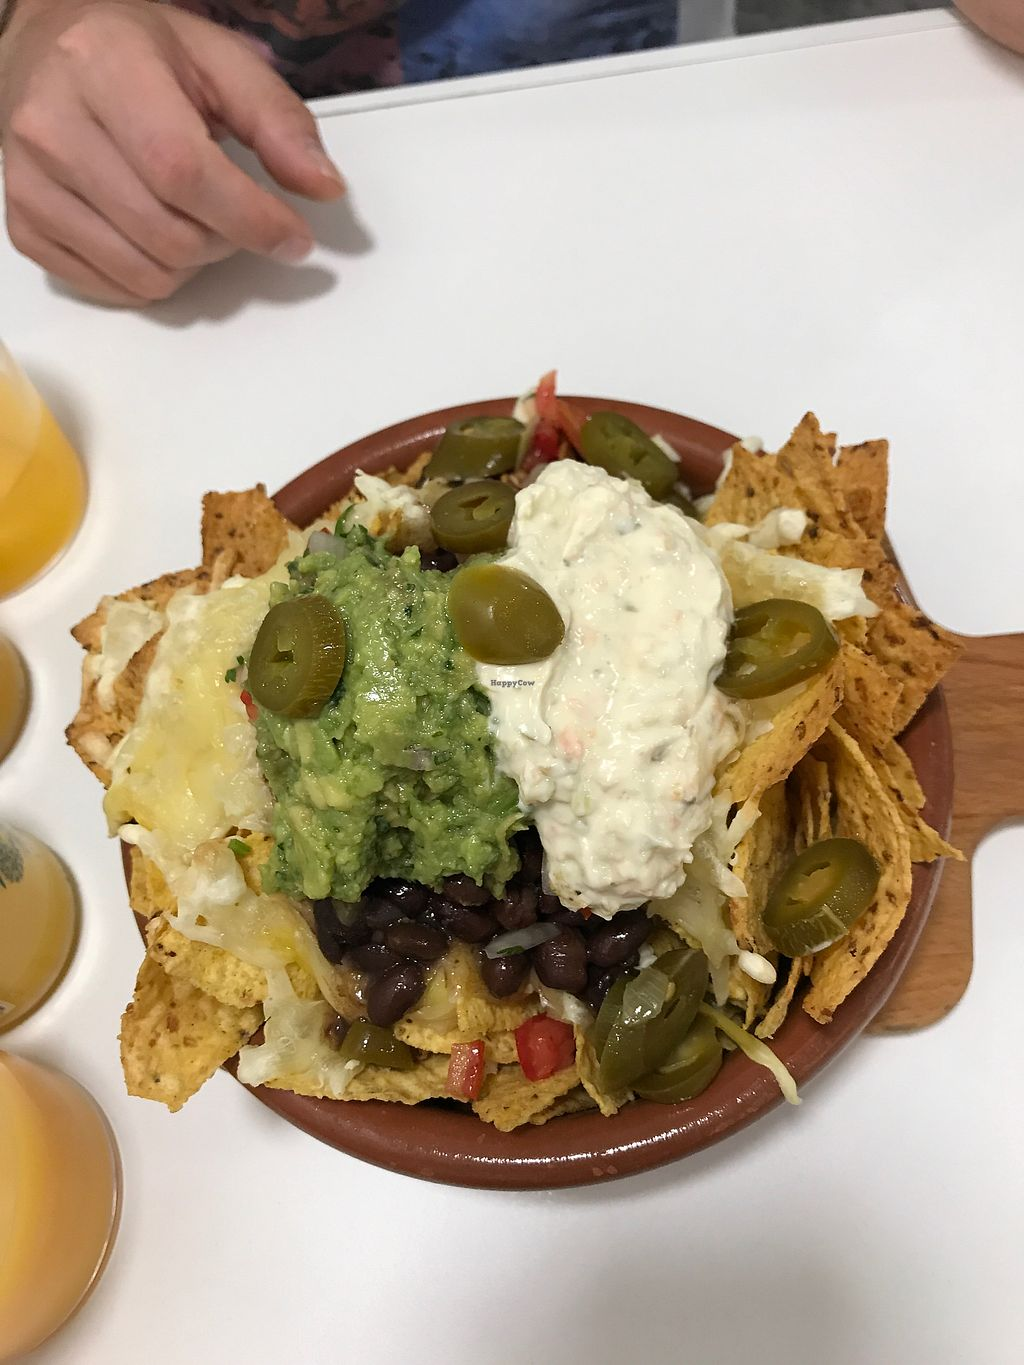 """Photo of Distrito Vegano  by <a href=""""/members/profile/swt7angel9"""">swt7angel9</a> <br/>Vegan nachos  <br/> September 28, 2017  - <a href='/contact/abuse/image/76138/309453'>Report</a>"""